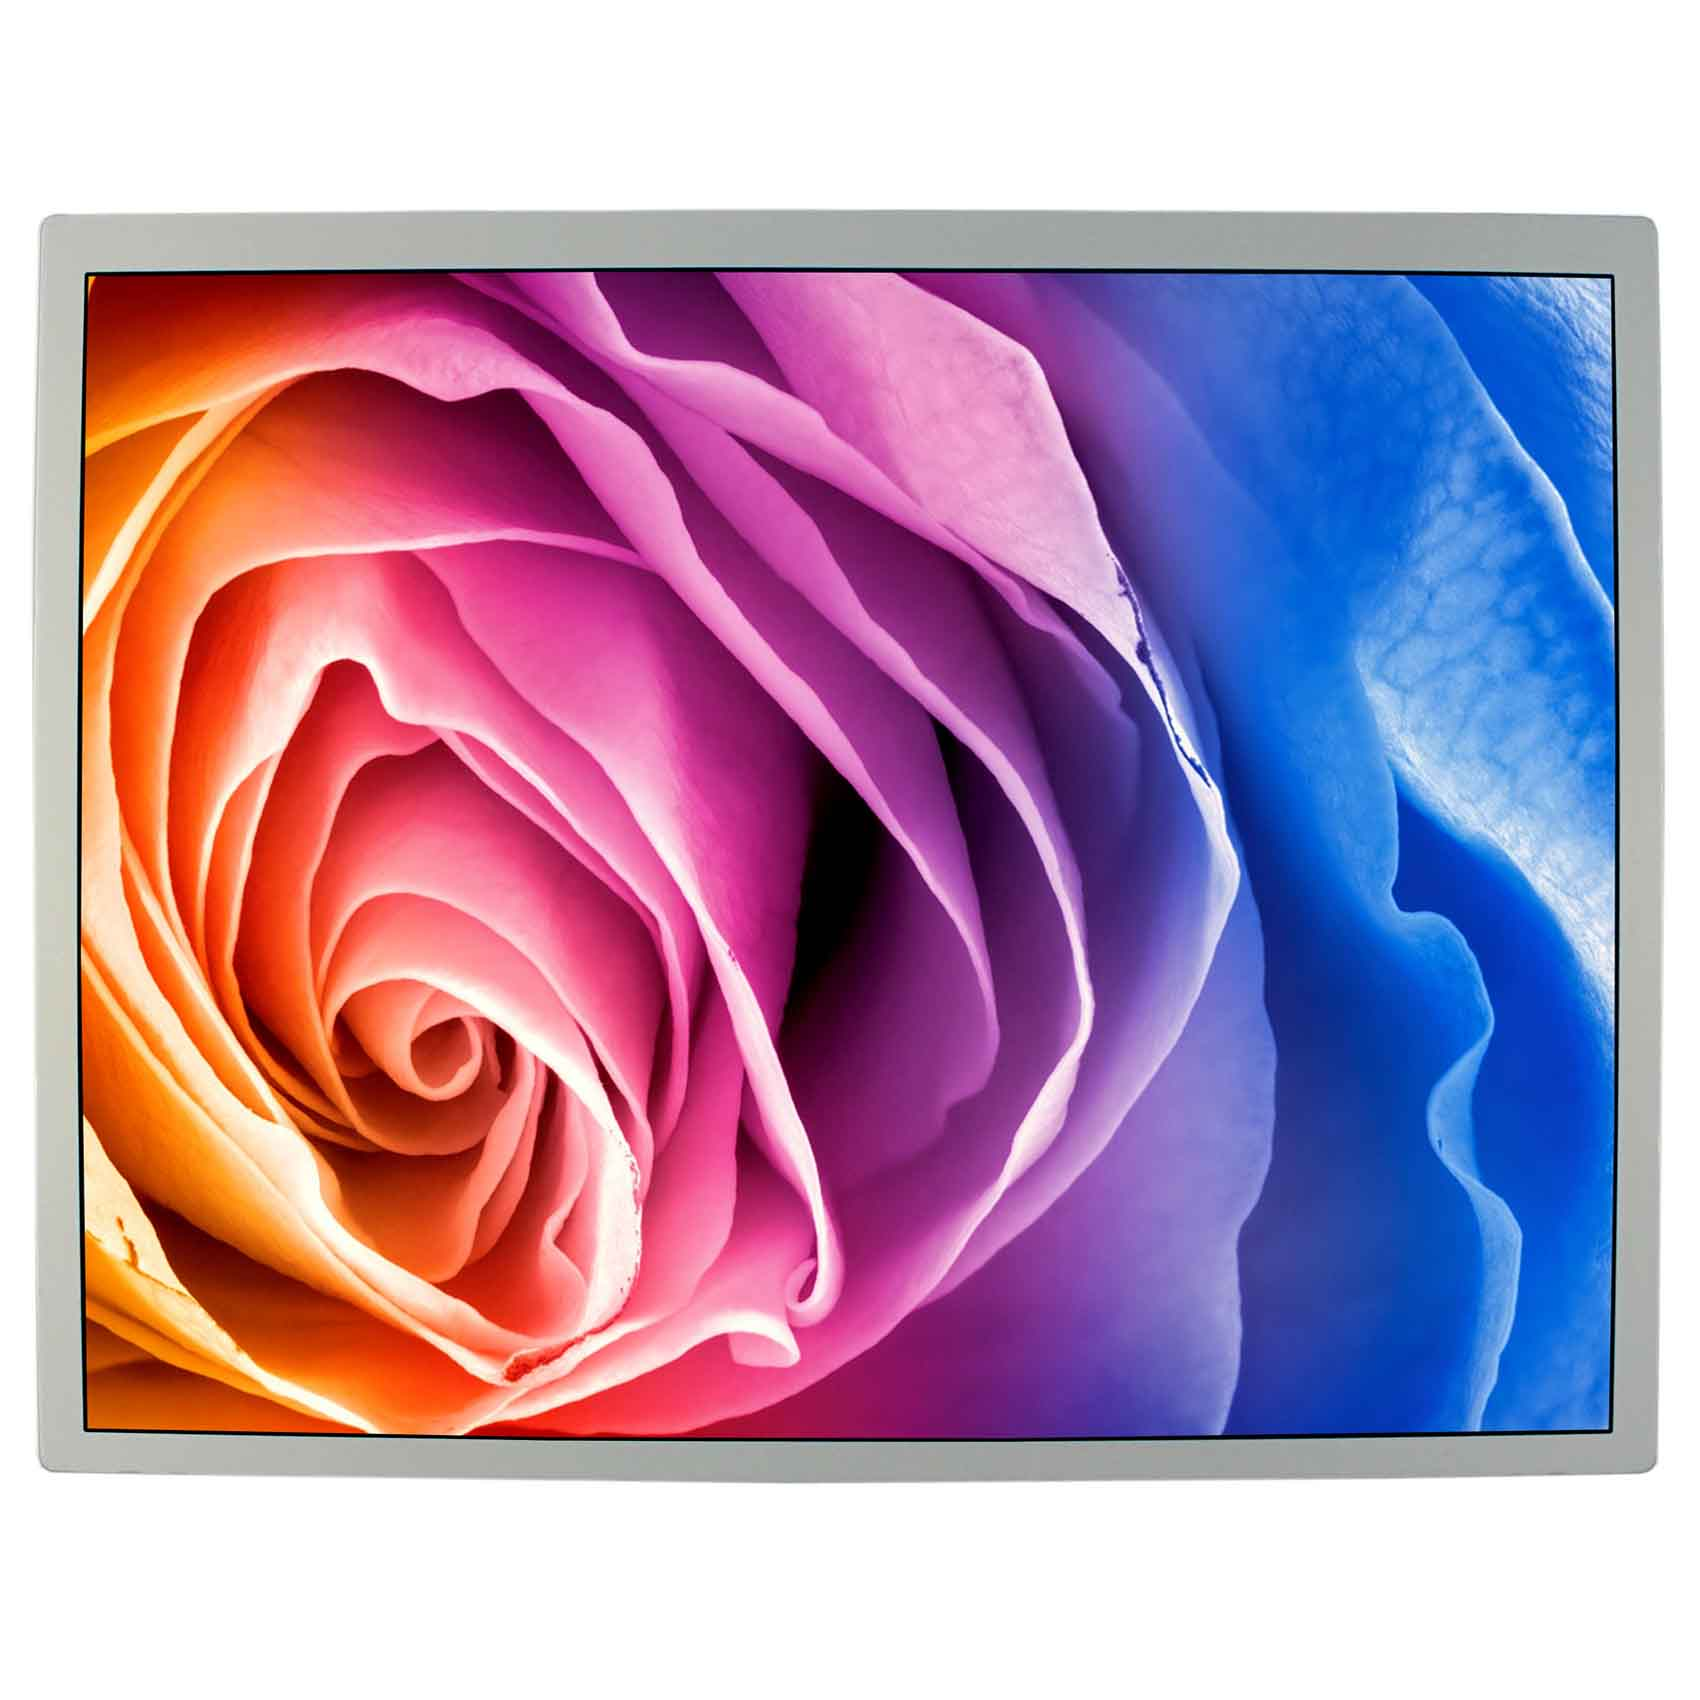 12.1inch 800x600 LQ121S1LG75 LCD Screen With LED Backlight 12 1inch 800x600 lq121s1lg75 lcd screen with led backlight